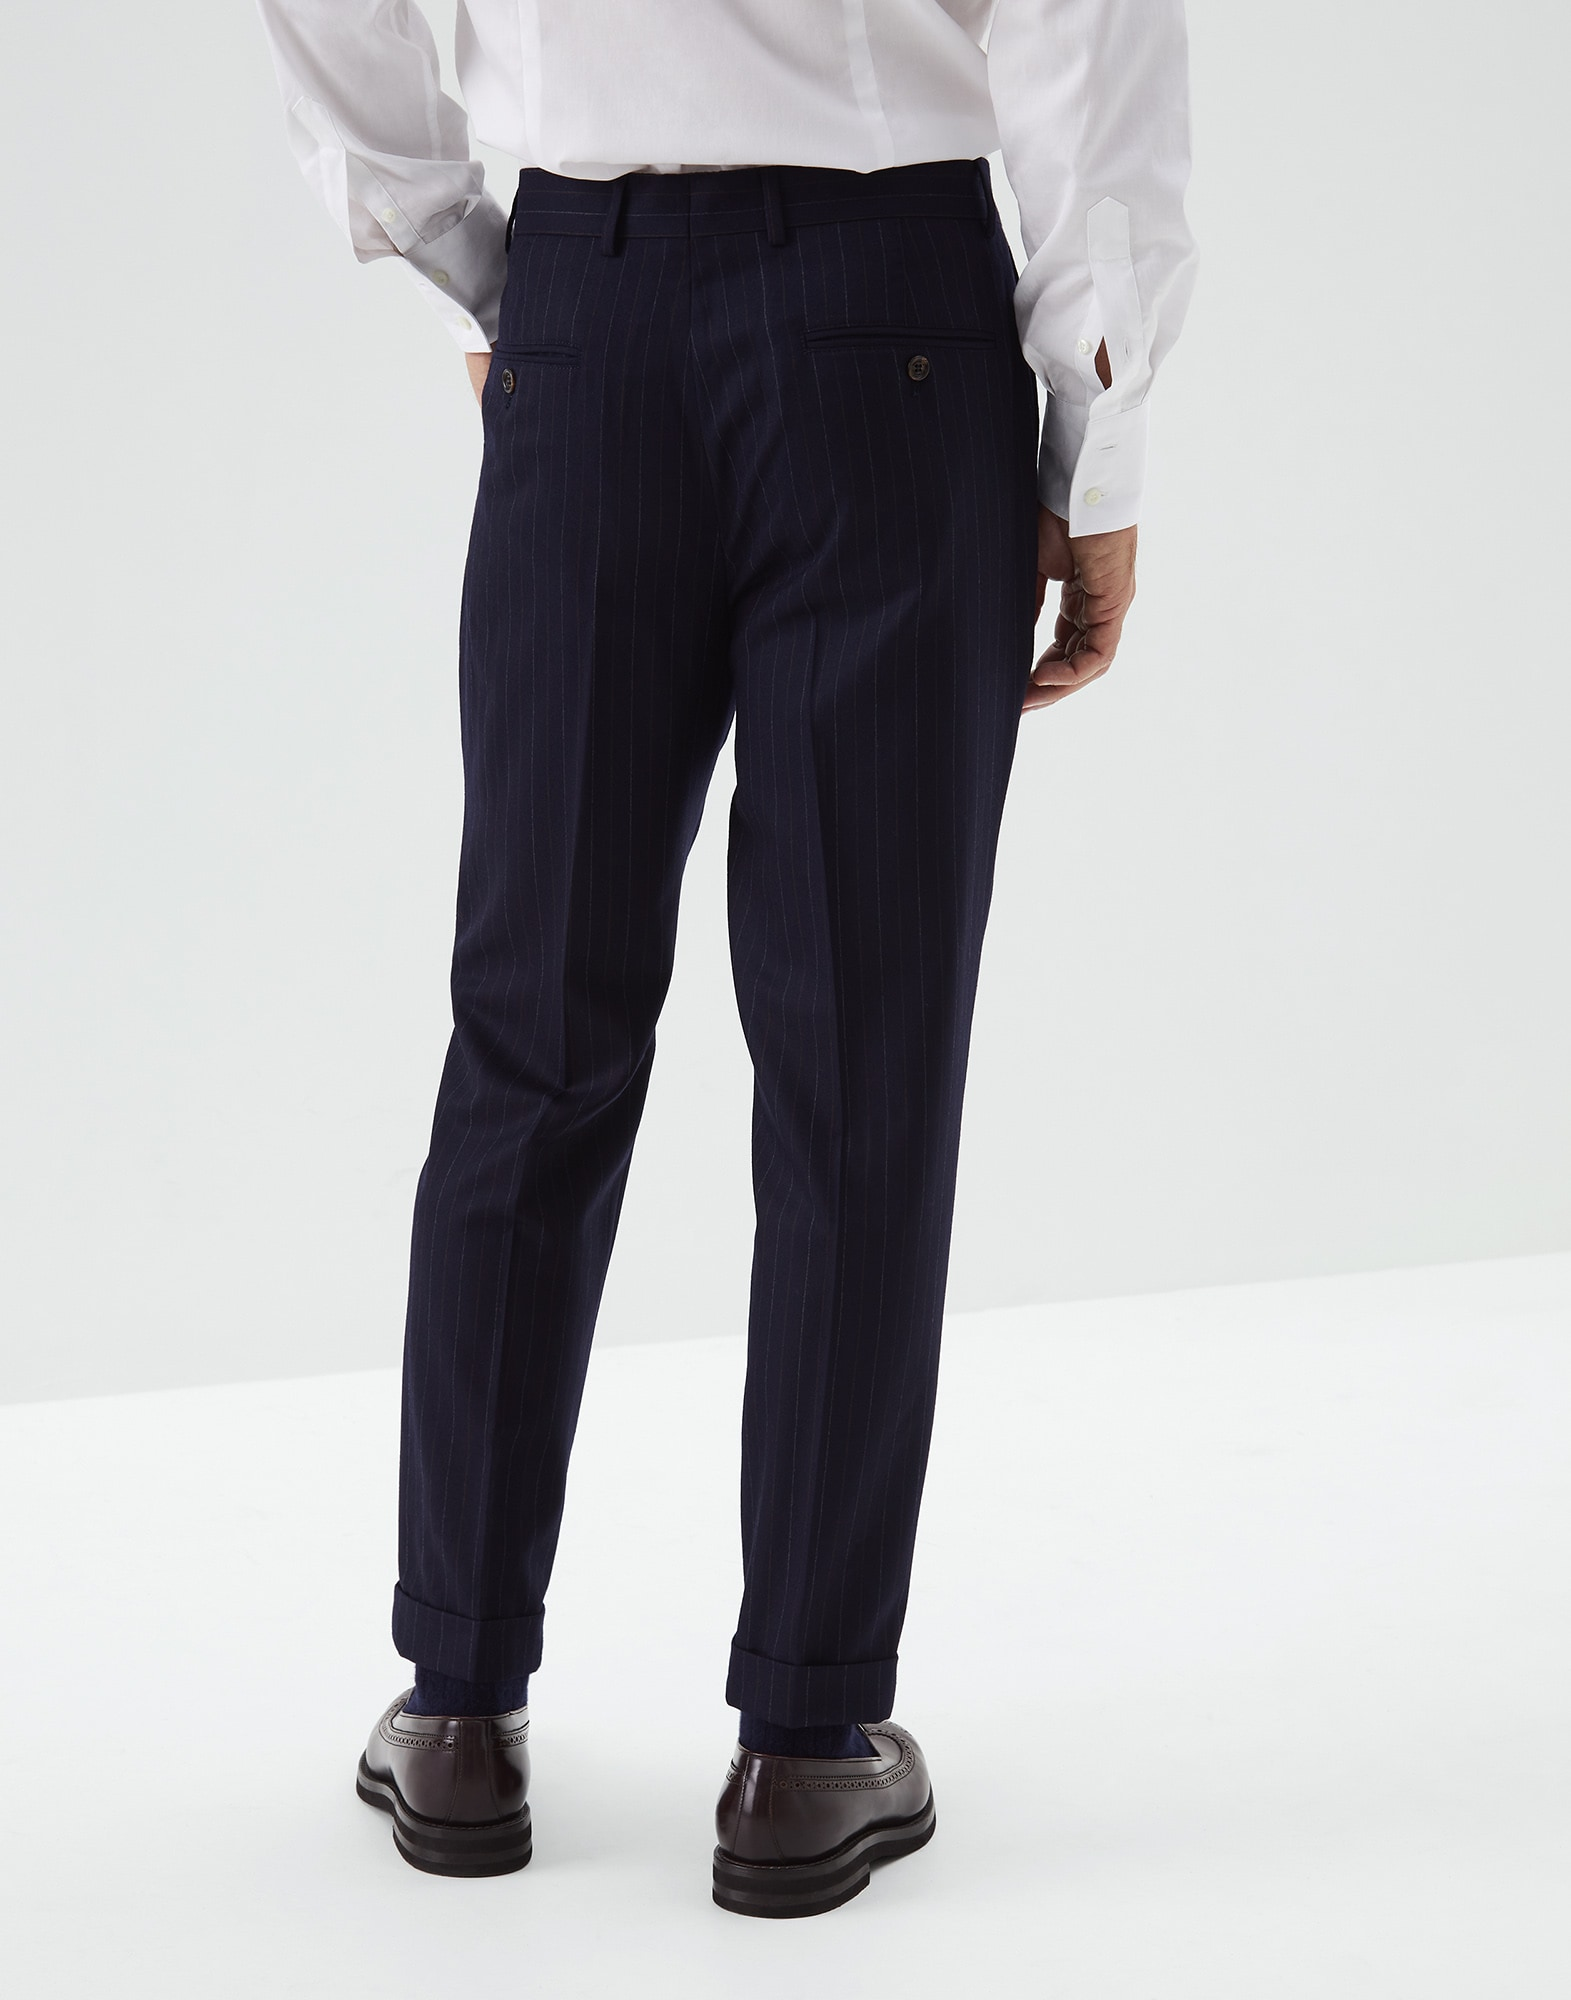 Trousers - Back view